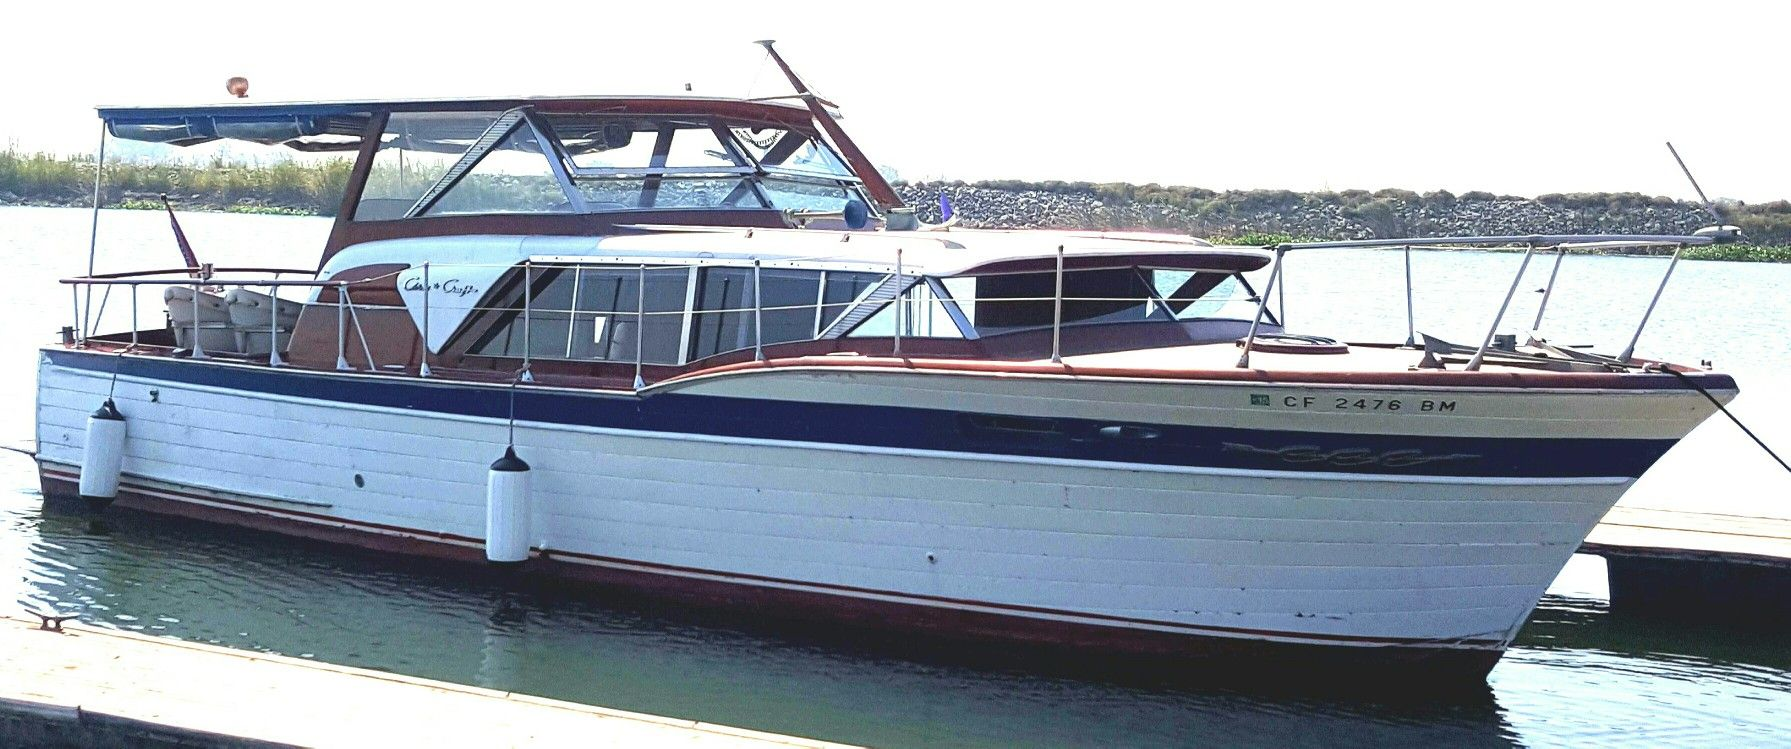 1960 Chris Craft Constellation 36 Boat Building Wooden Boats Boat